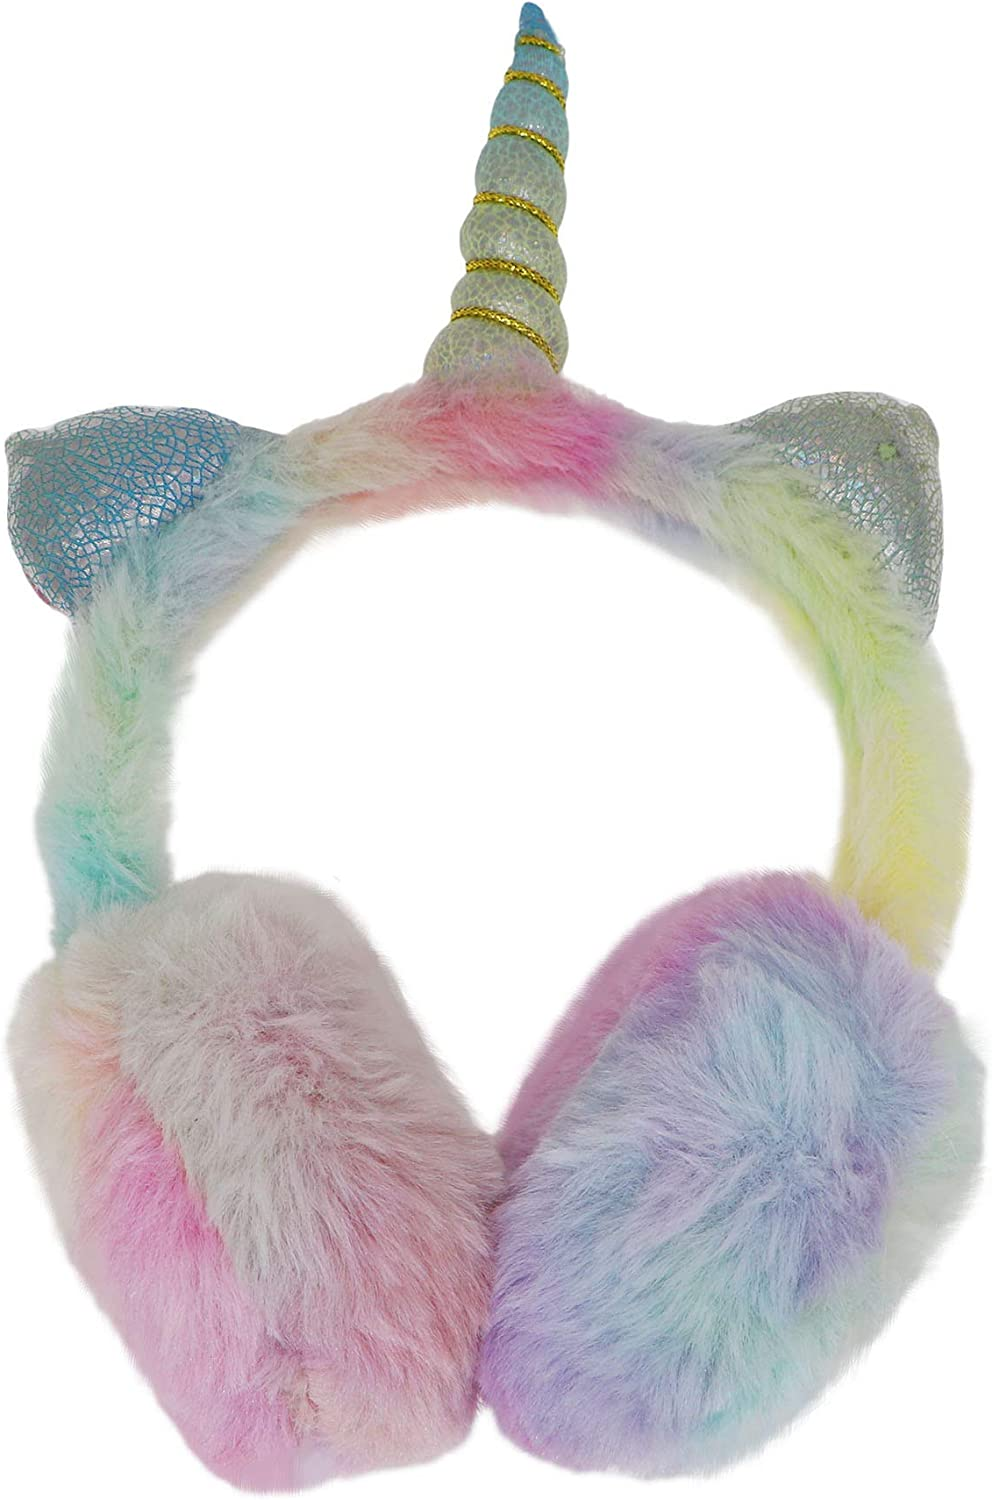 Celebration Fish Colourful Ocean Winter Earmuffs Ear Warmers Faux Fur Foldable Plush Outdoor Gift